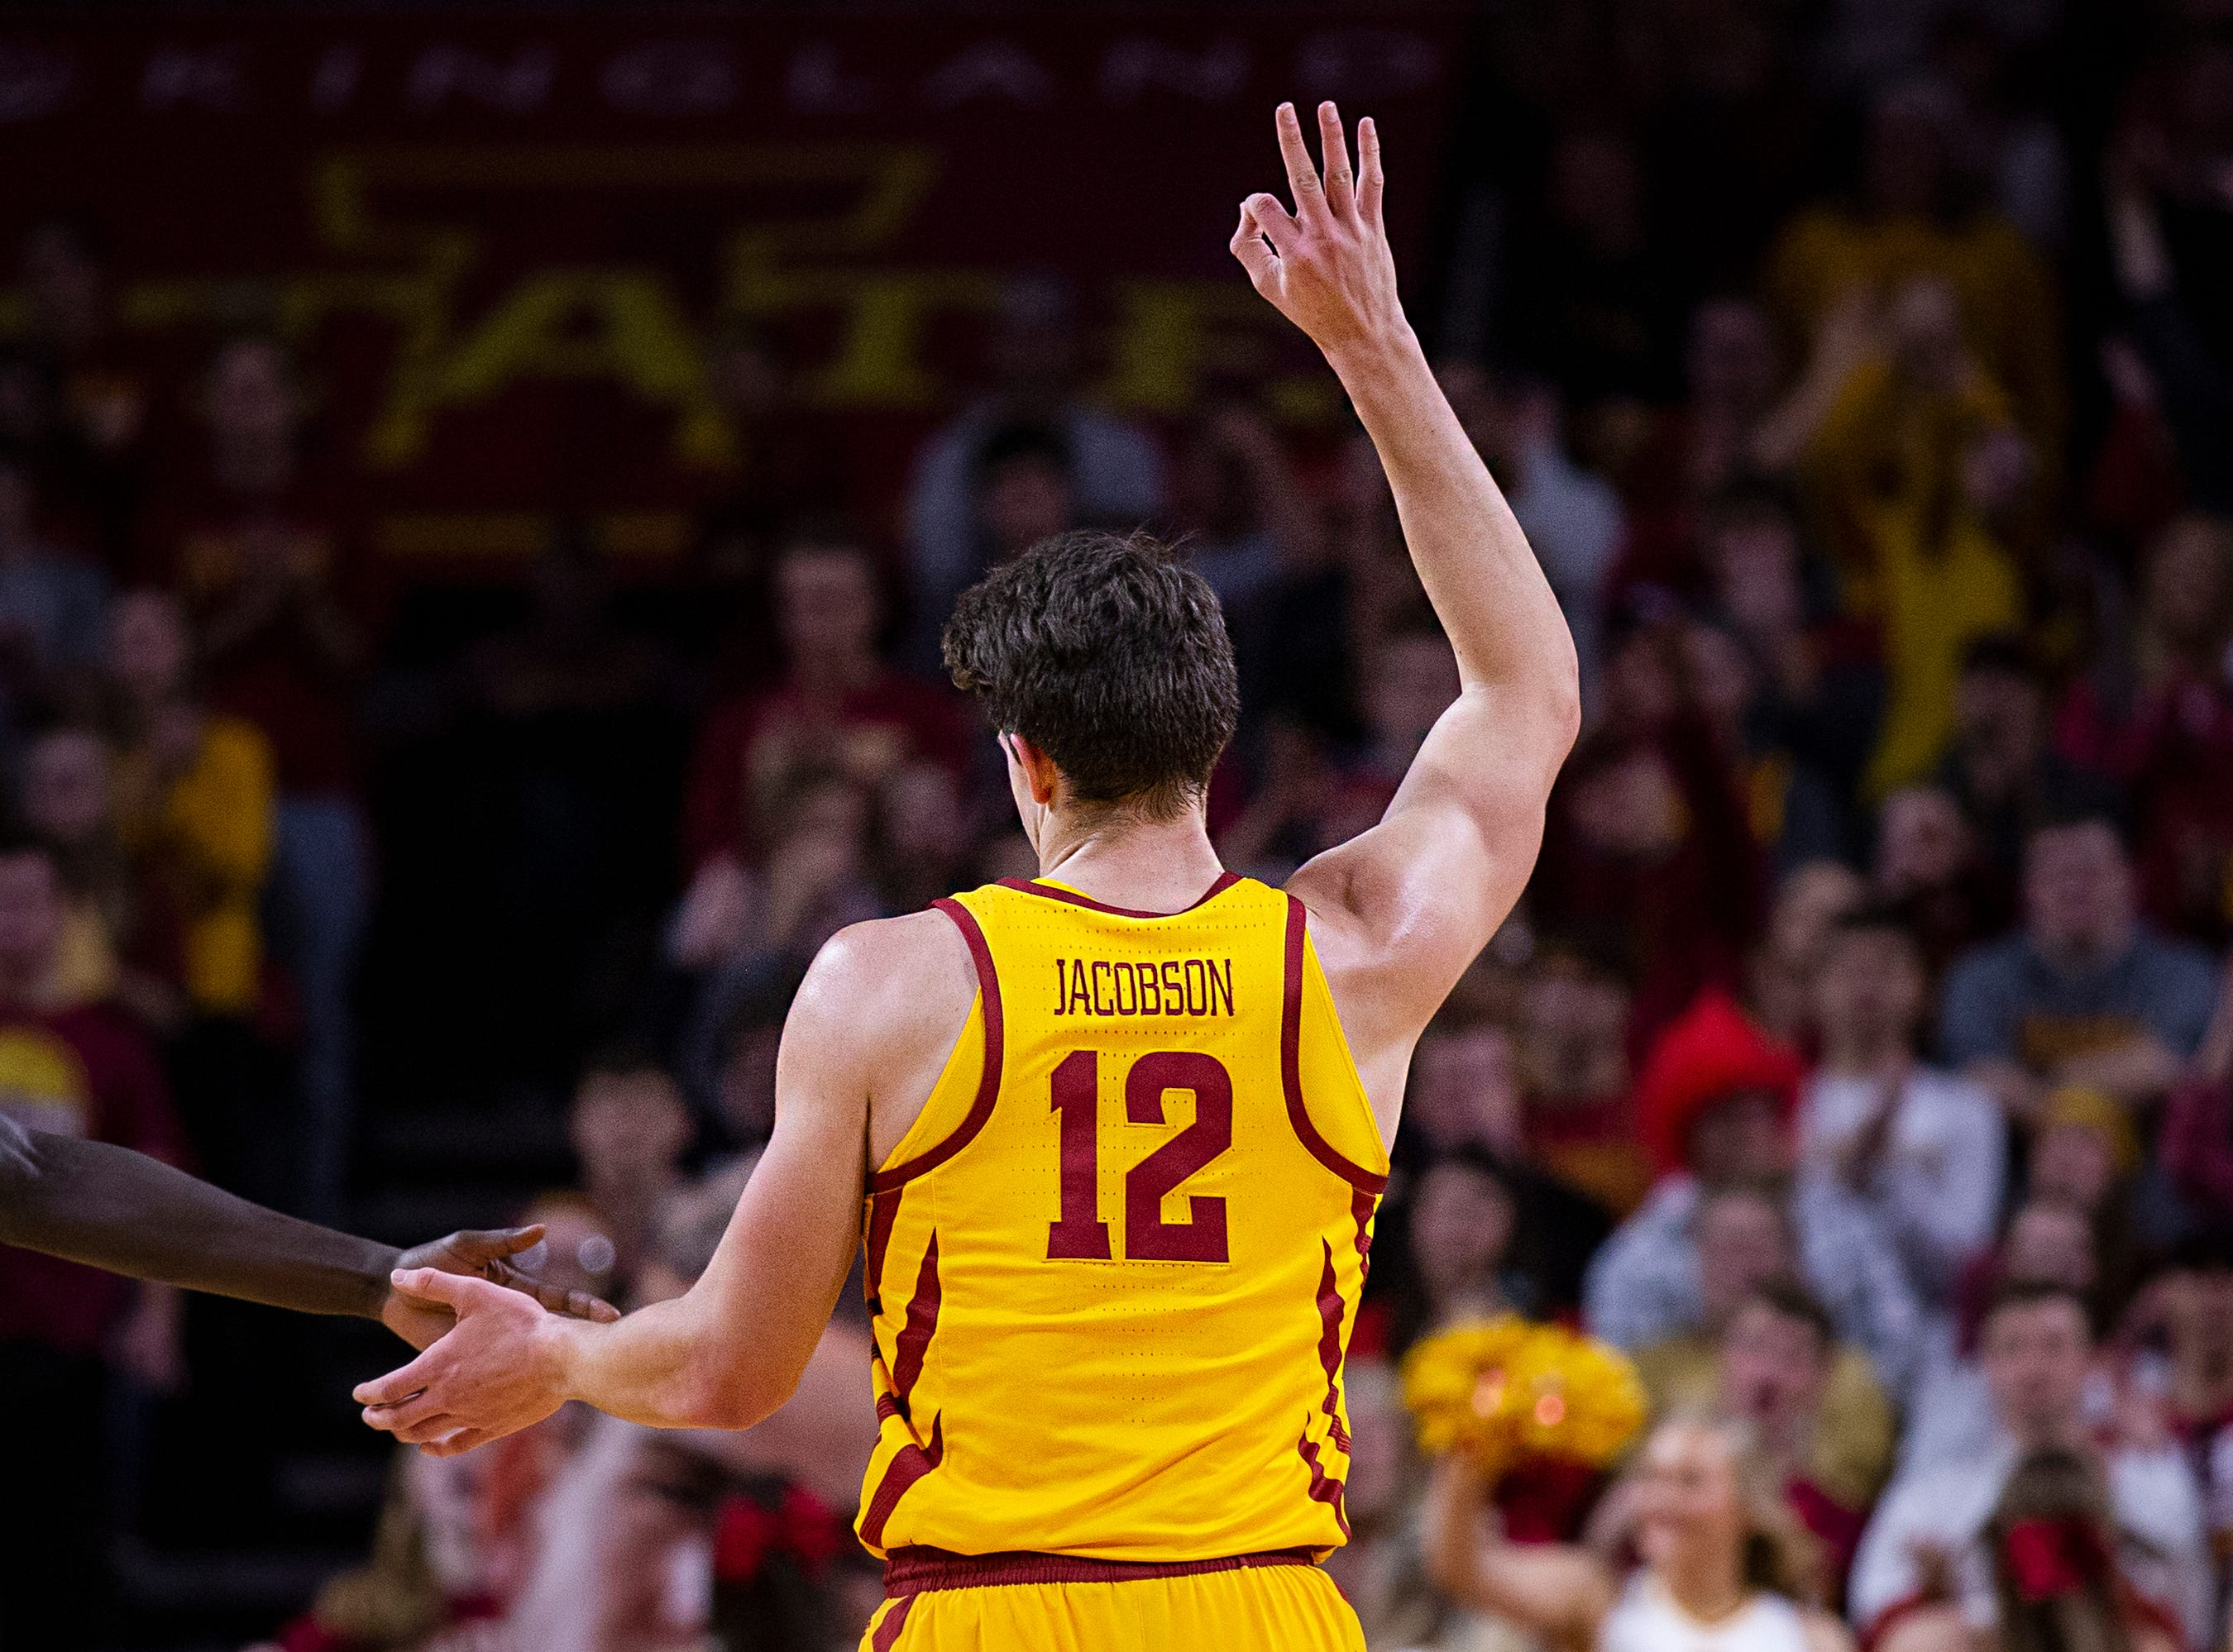 Iowa State's Michael Jacobson celebrates scoring three points during the Iowa State men's basketball game against North Dakota State University on Monday, Dec. 3, 2018, in Hilton Coliseum.